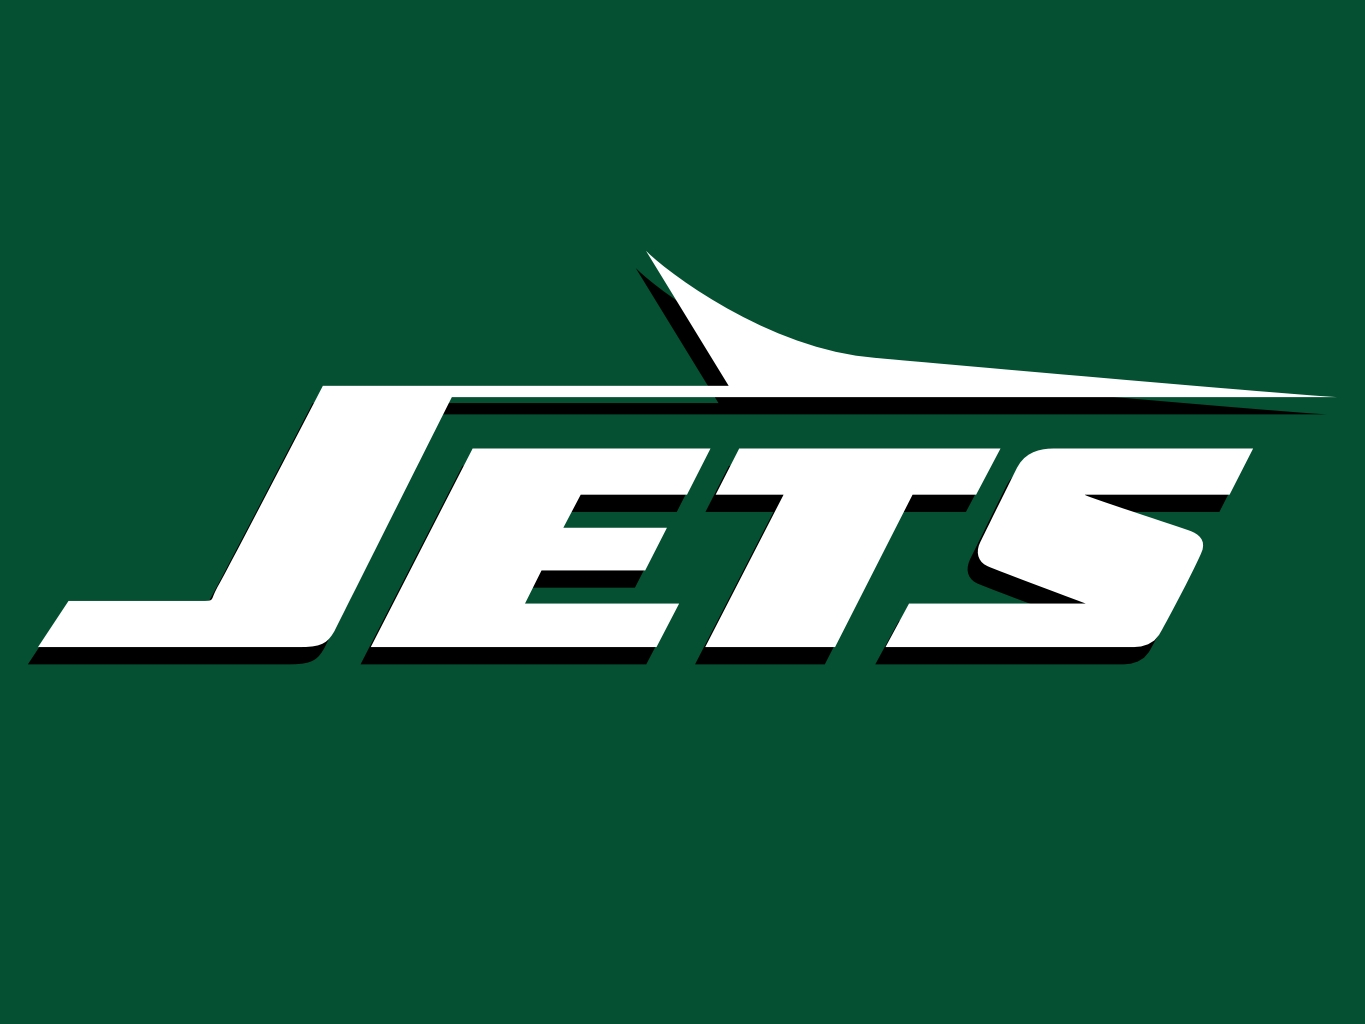 New York Jets Clipart.